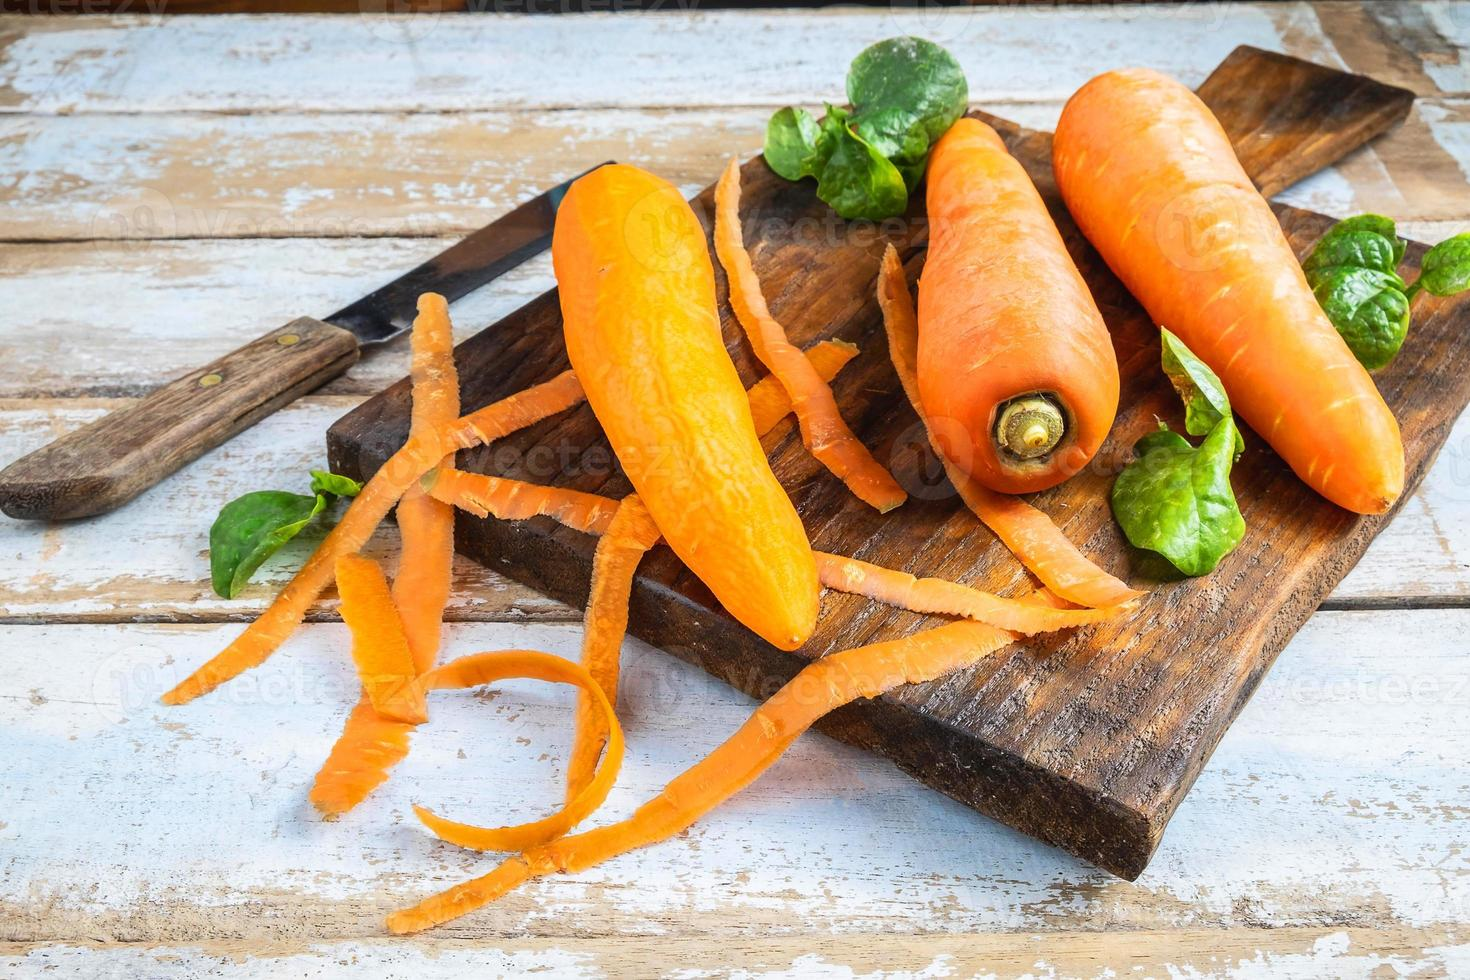 Carrots on a cutting board photo